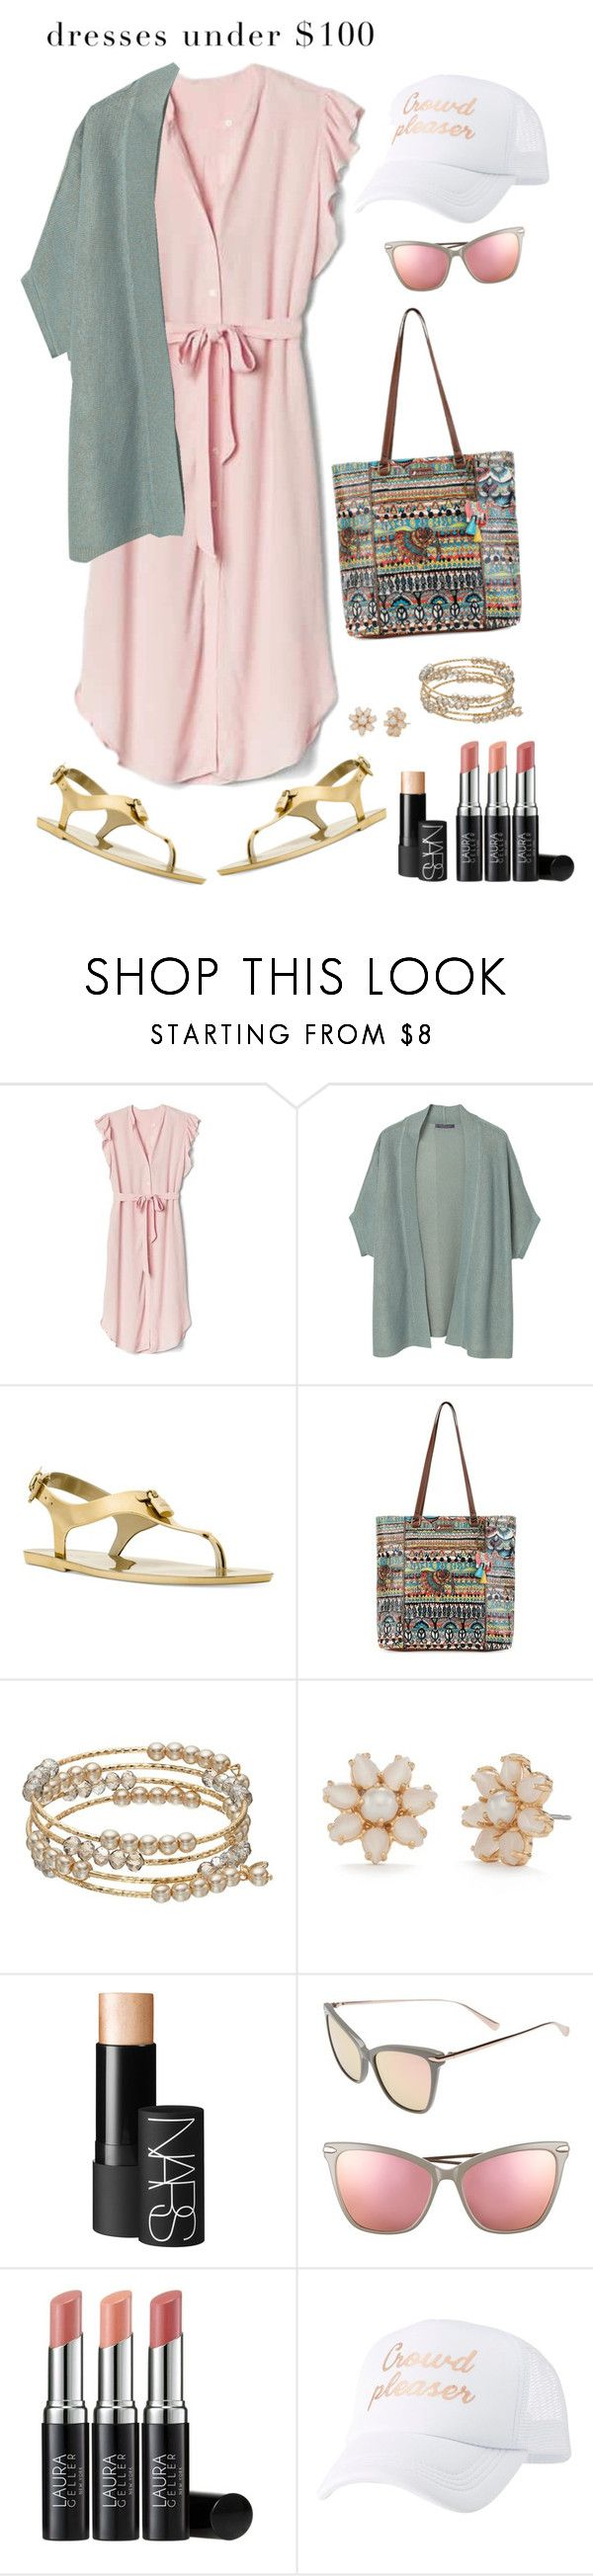 """""""Dresses under $100"""" by musicfriend1 on Polyvore featuring Gap, Violeta by Mango, Michael Kors, Sakroots, Kate Spade, NARS Cosmetics, Hadid, Laura Geller, Charlotte Russe and lovethis"""